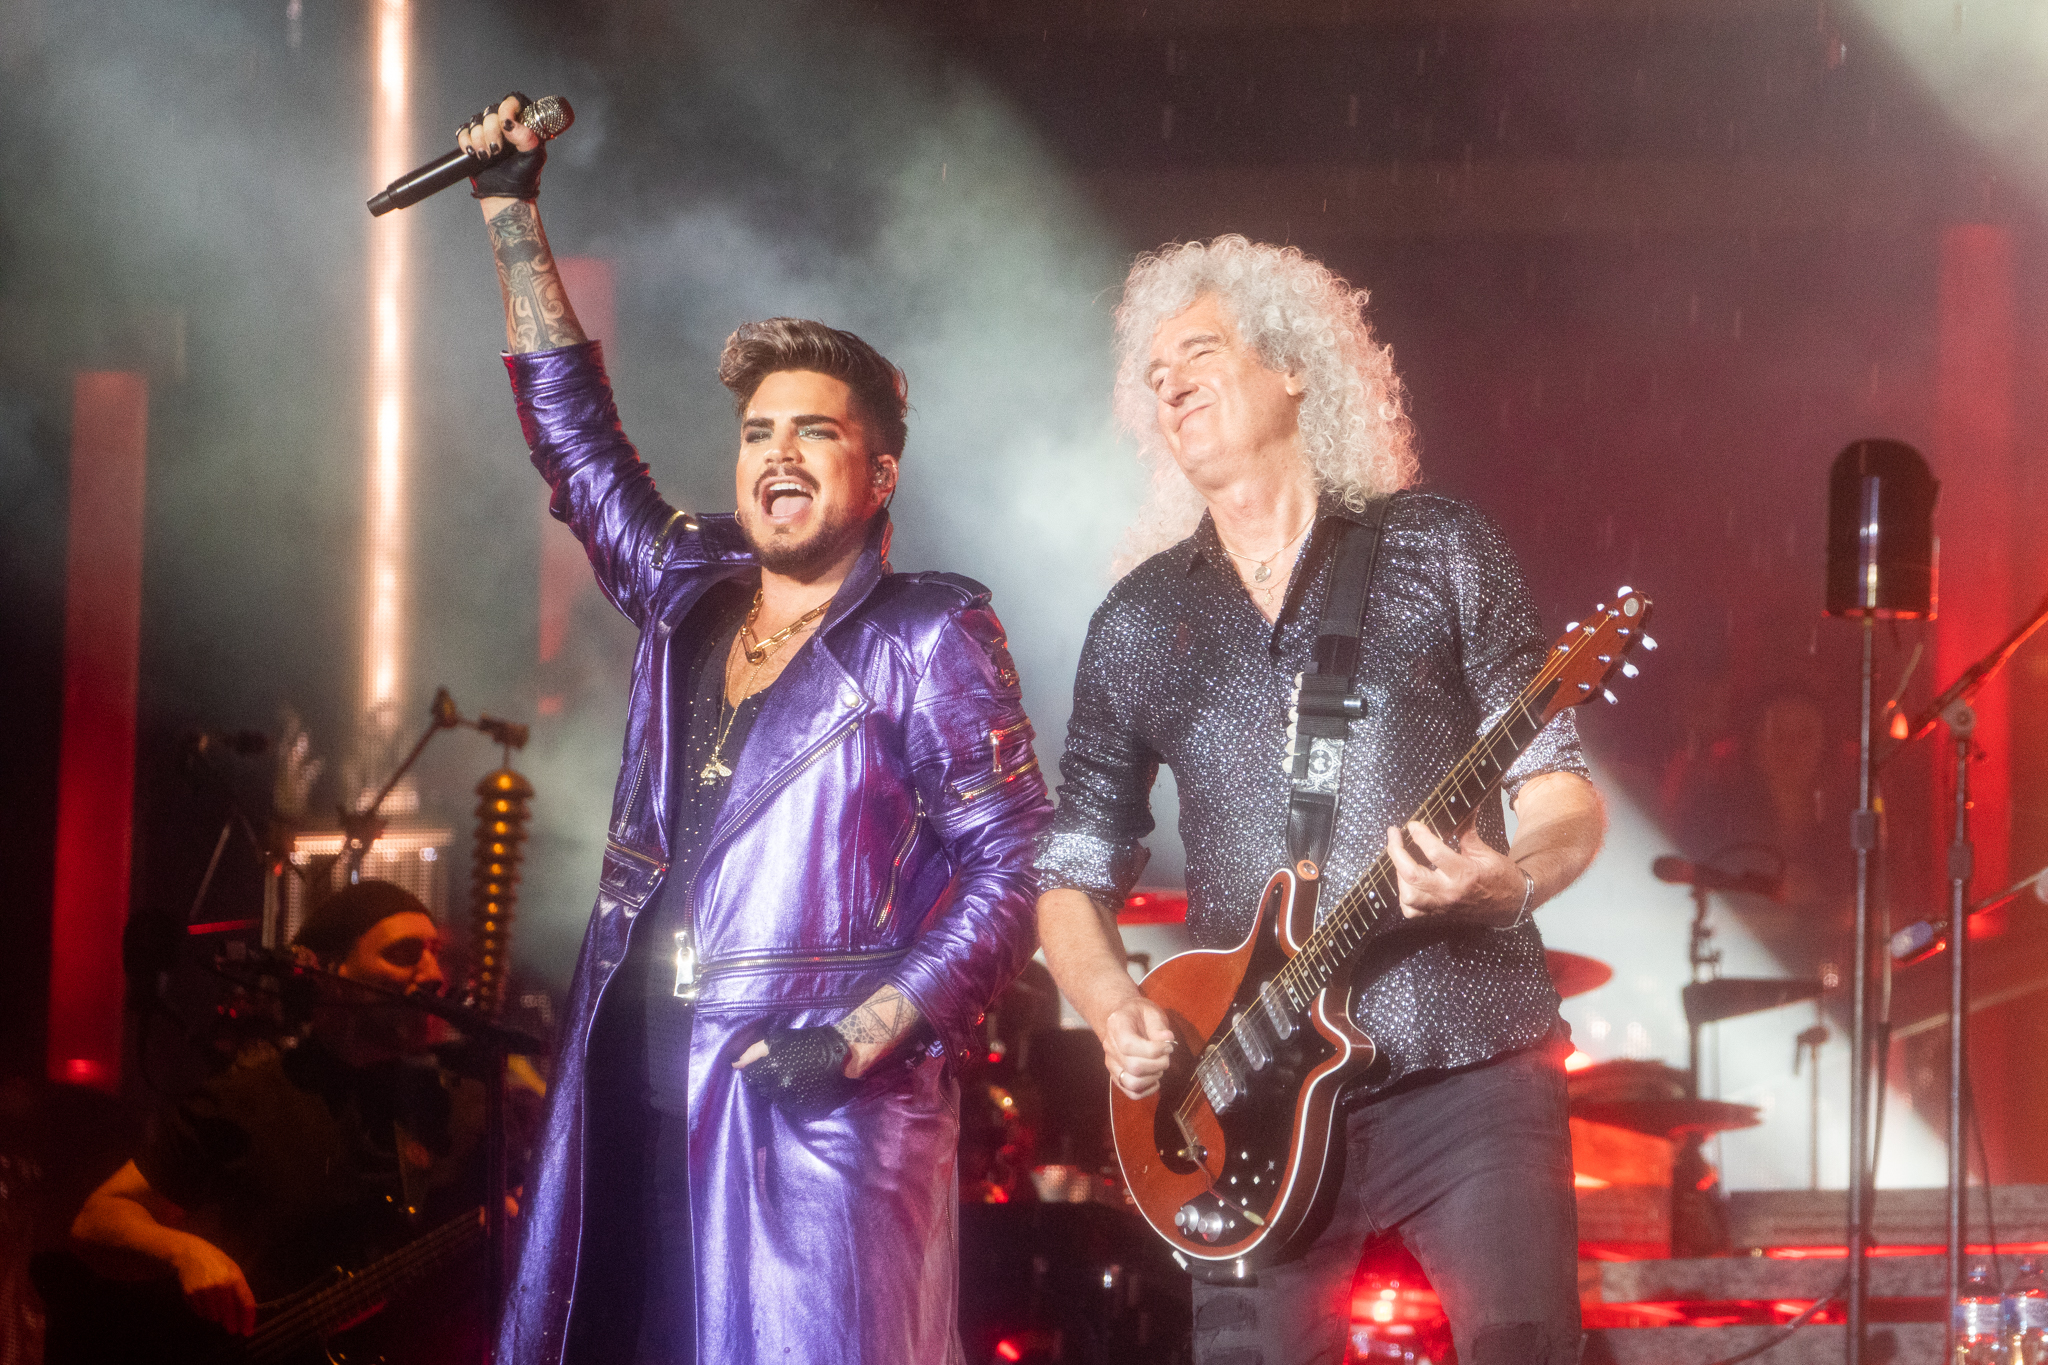 Even In Torrential Rain, Queen Deliver 'Superb' Showing At First Stop On Aussie Tour